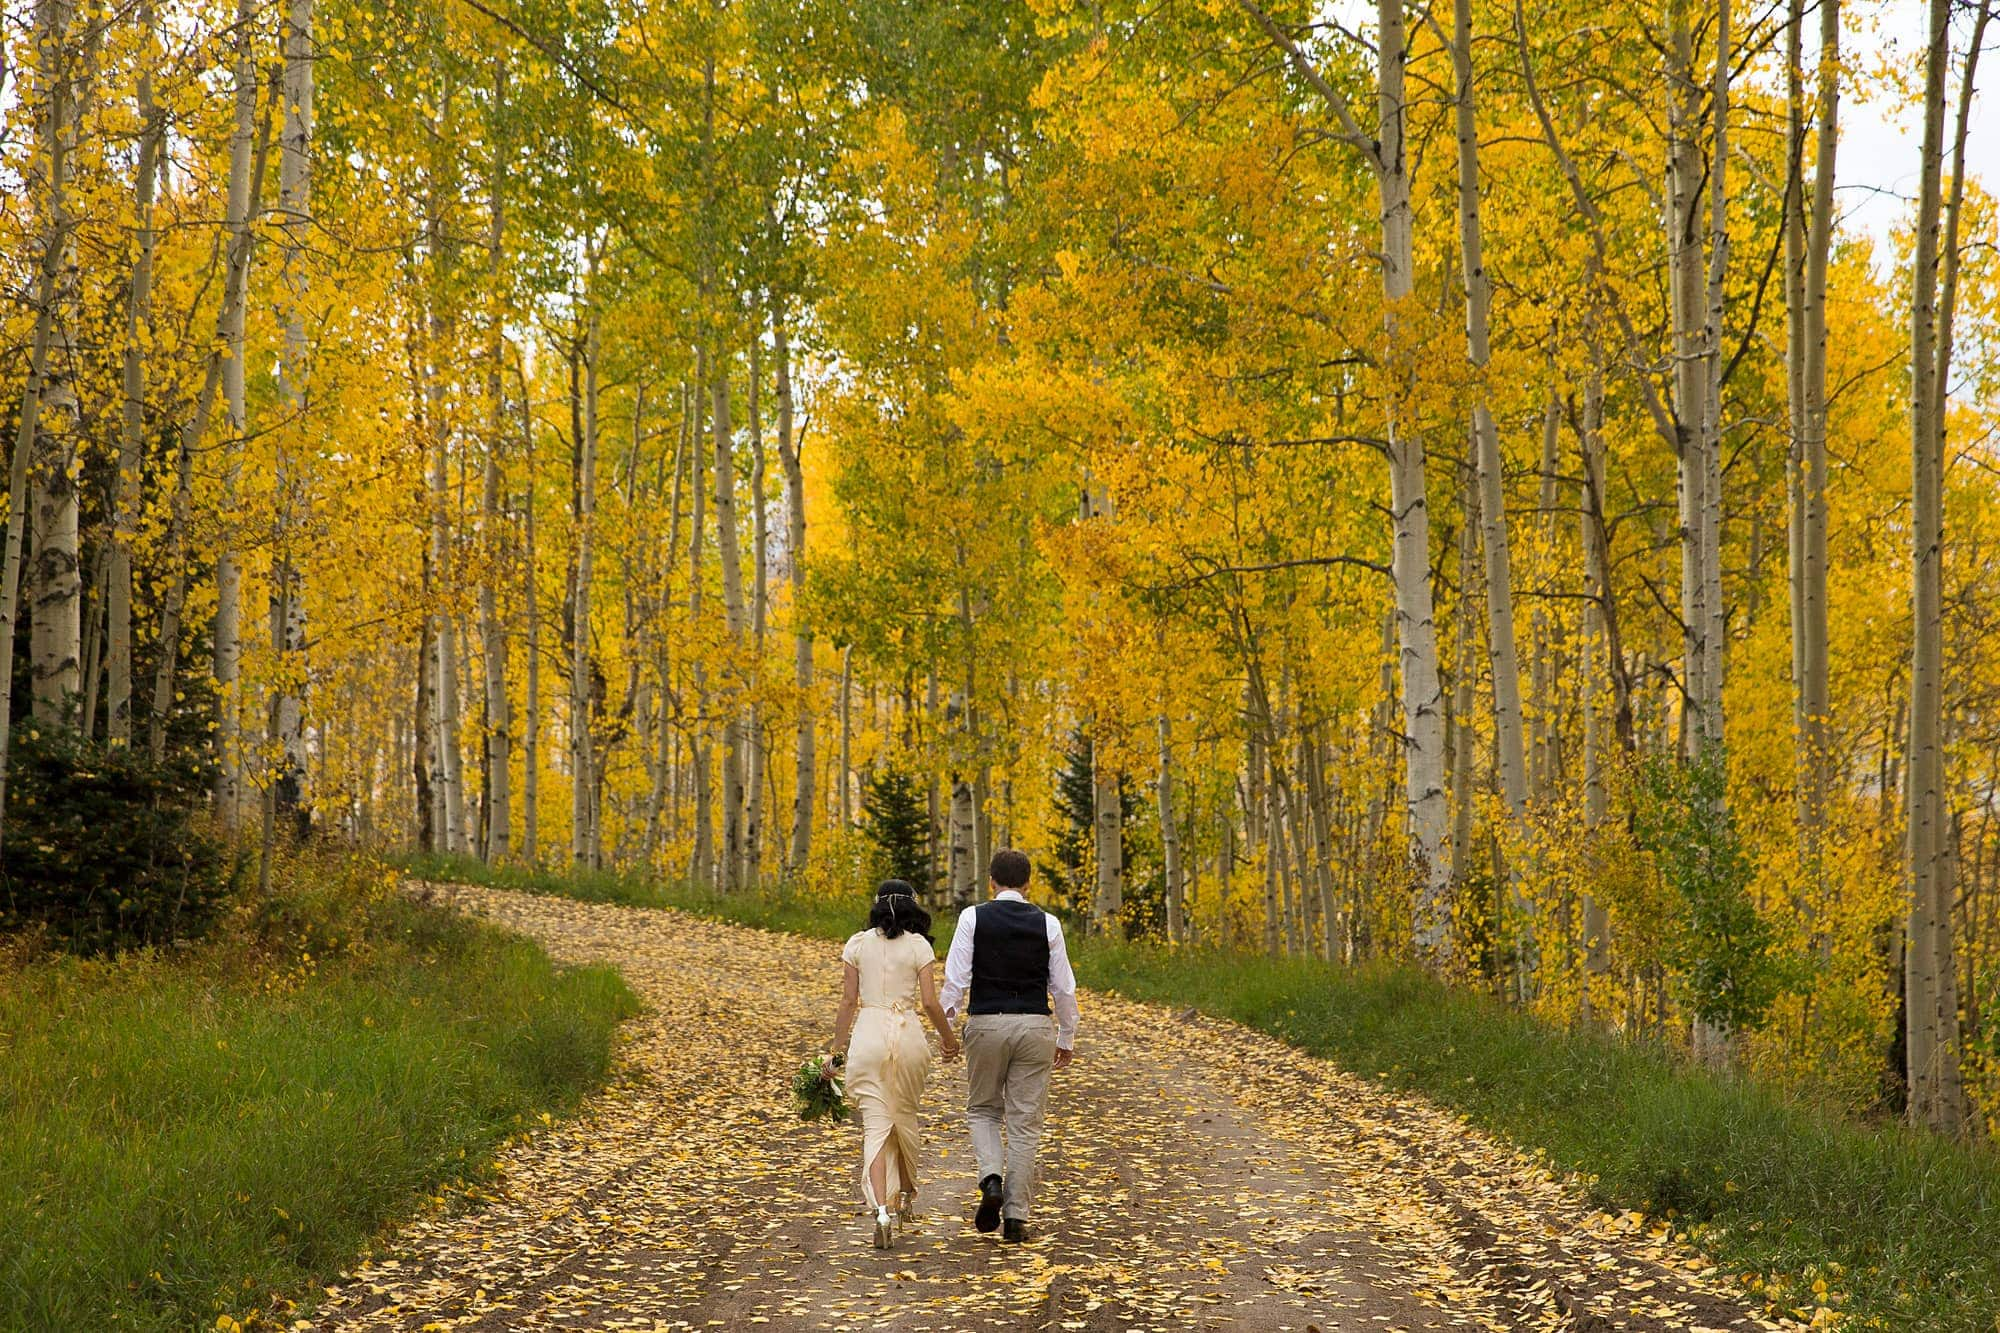 Allison and Walker walk down a road covered in yellow aspen leaves after their Lynn Britt Cabin wedding in Snowmass Village near Aspen, Colorado.